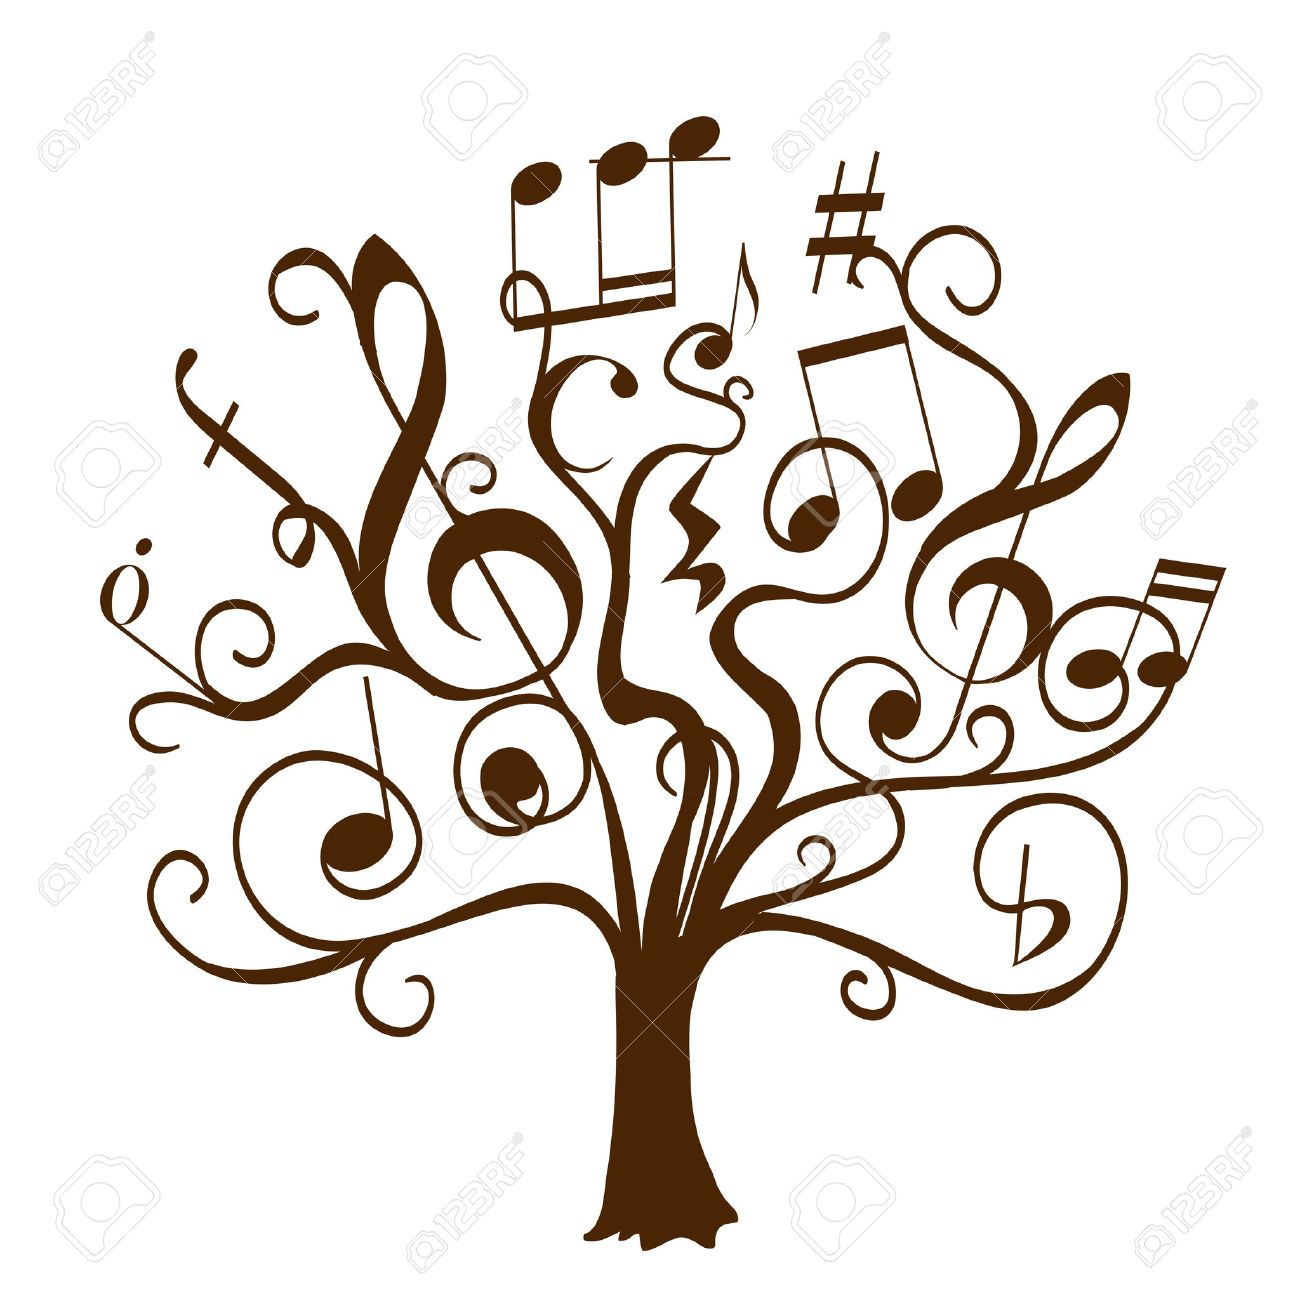 hand drawn tree with curly twigs with musical notes and signs as leaves and flowers. abstract conceptual illustration on musical education theme. vector decorative tree of musical knowledge - 52215667